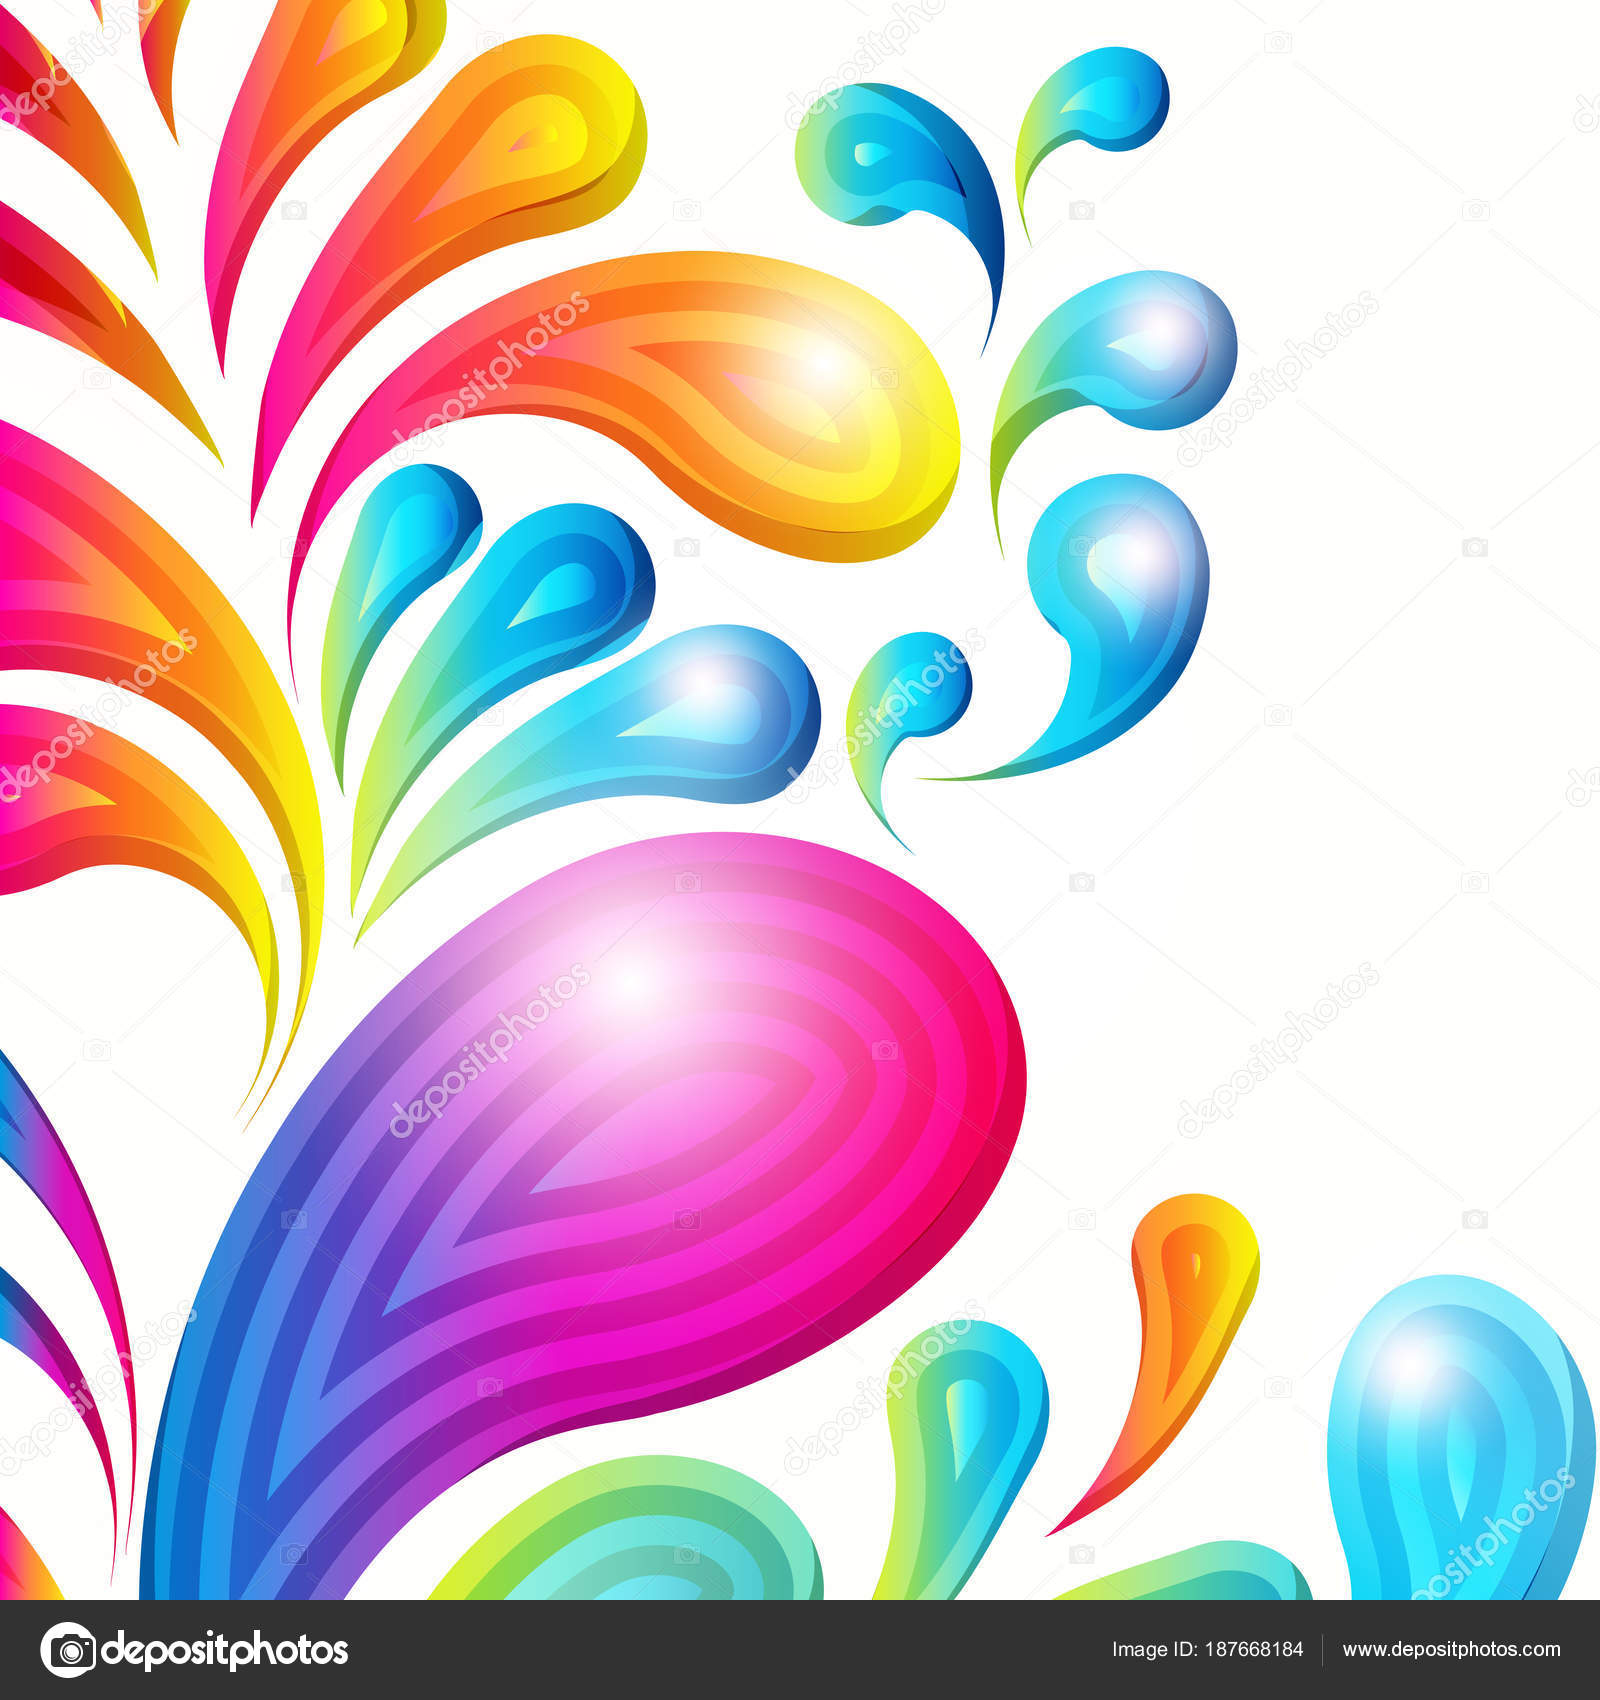 Download 520 Background Color HD Terbaik